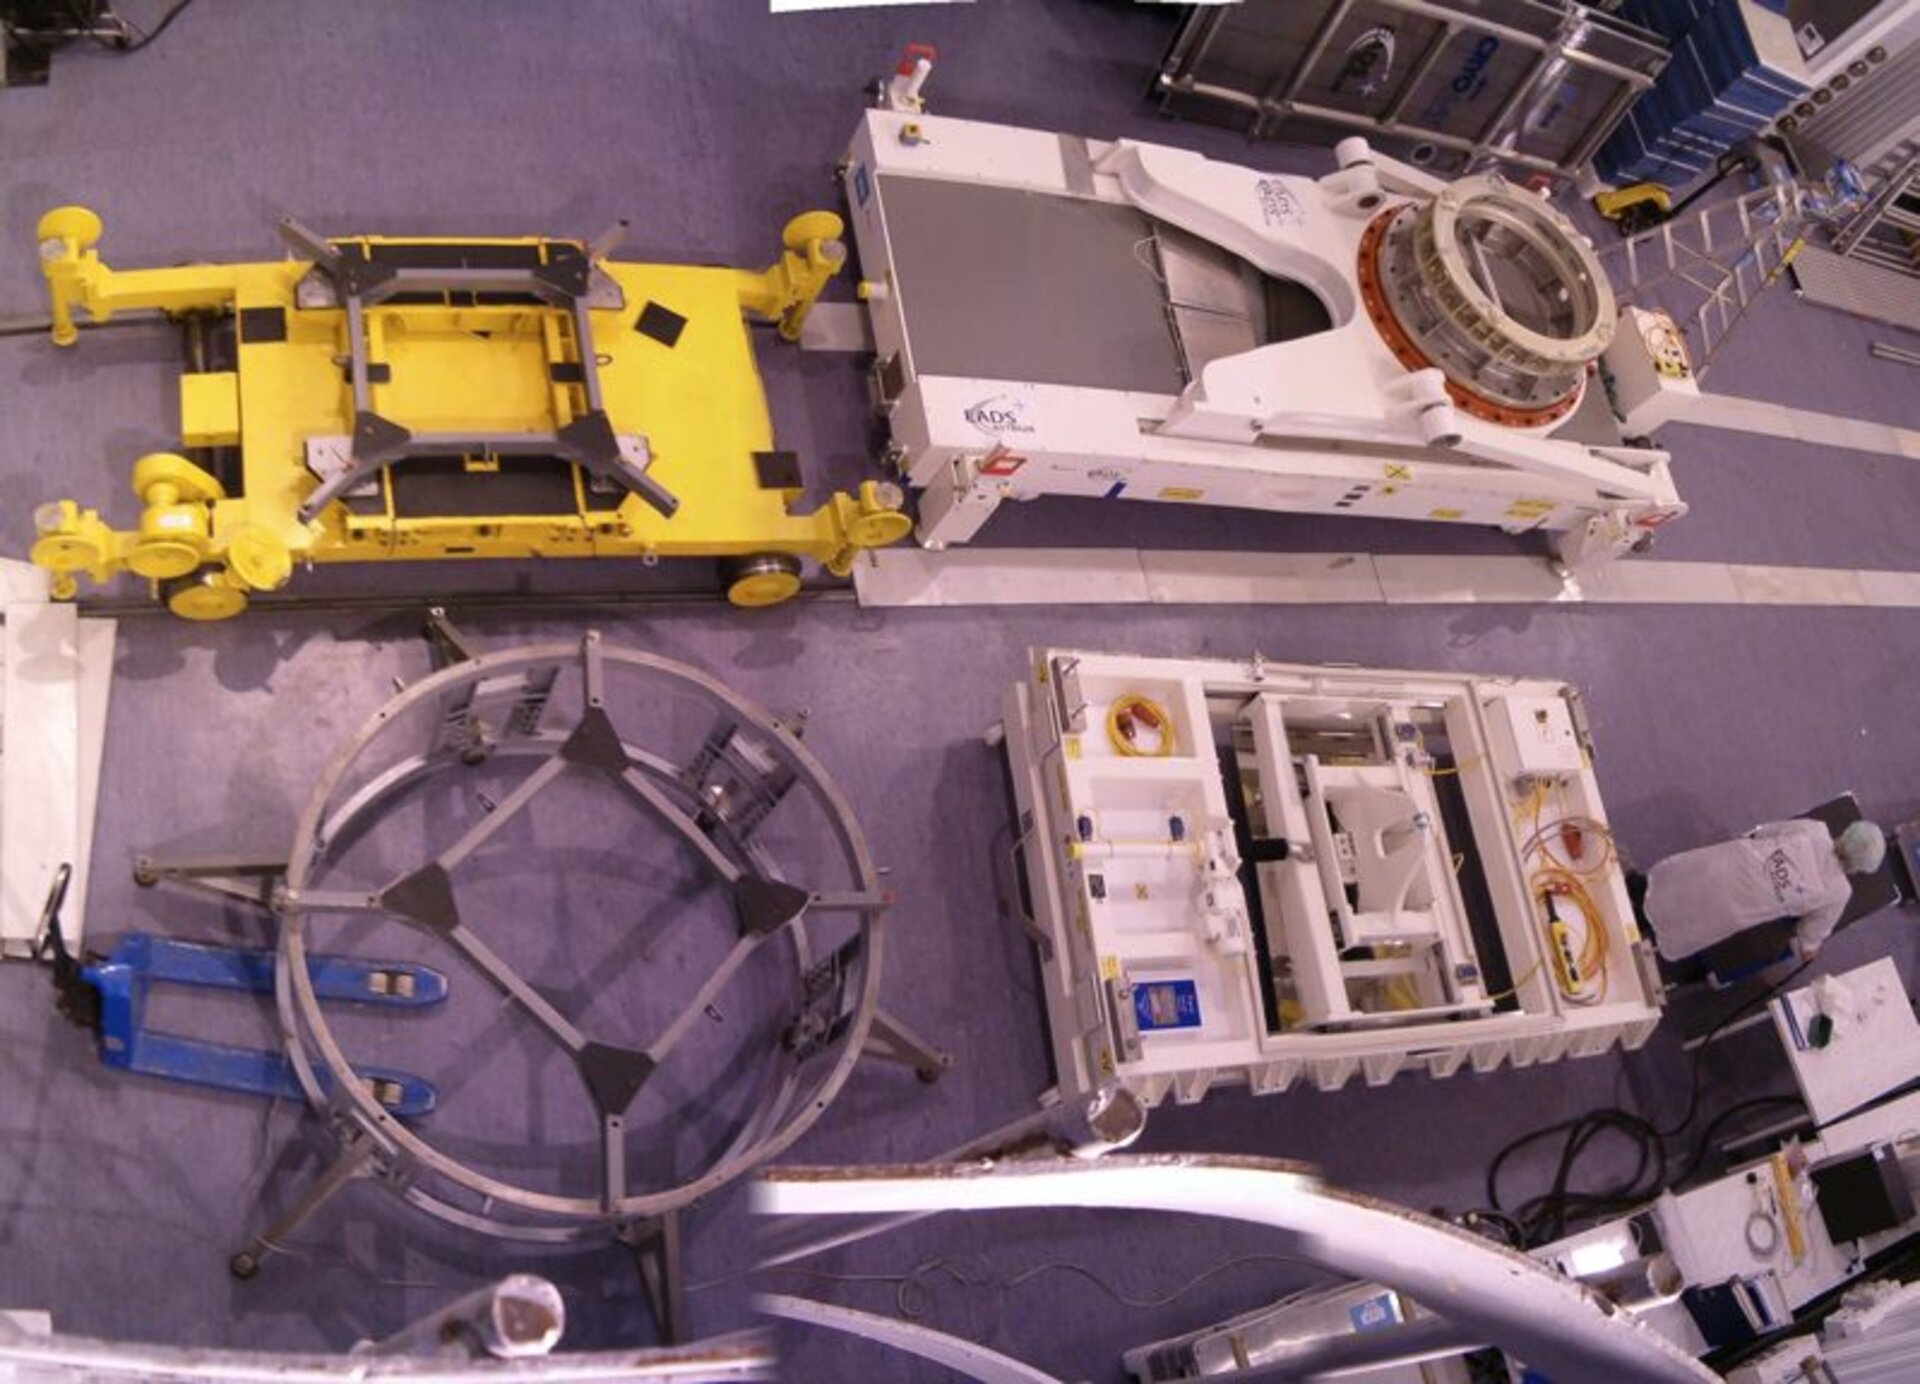 Ground support equipment used for CryoSat